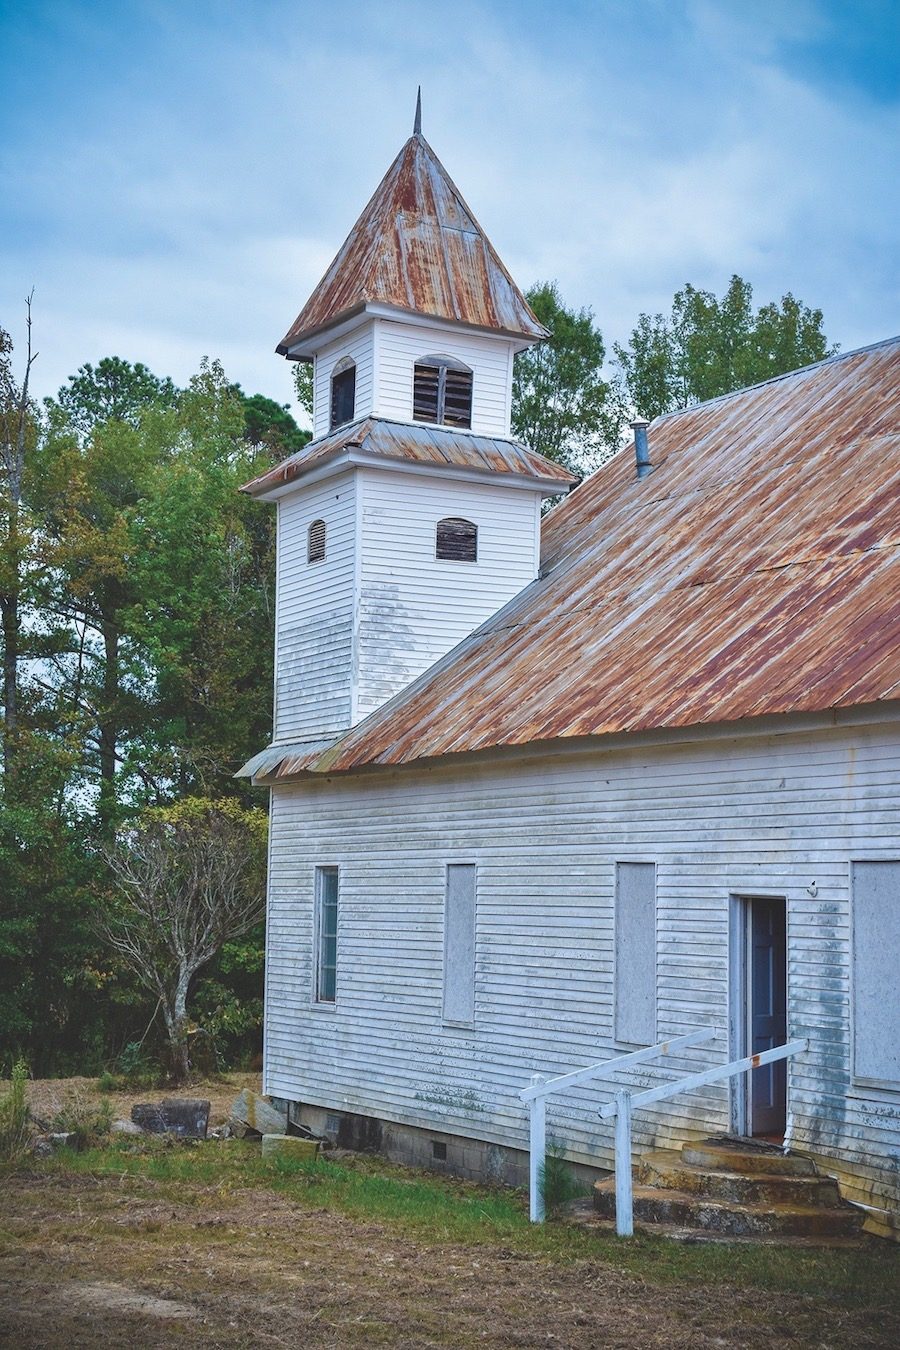 old country church with tin roof